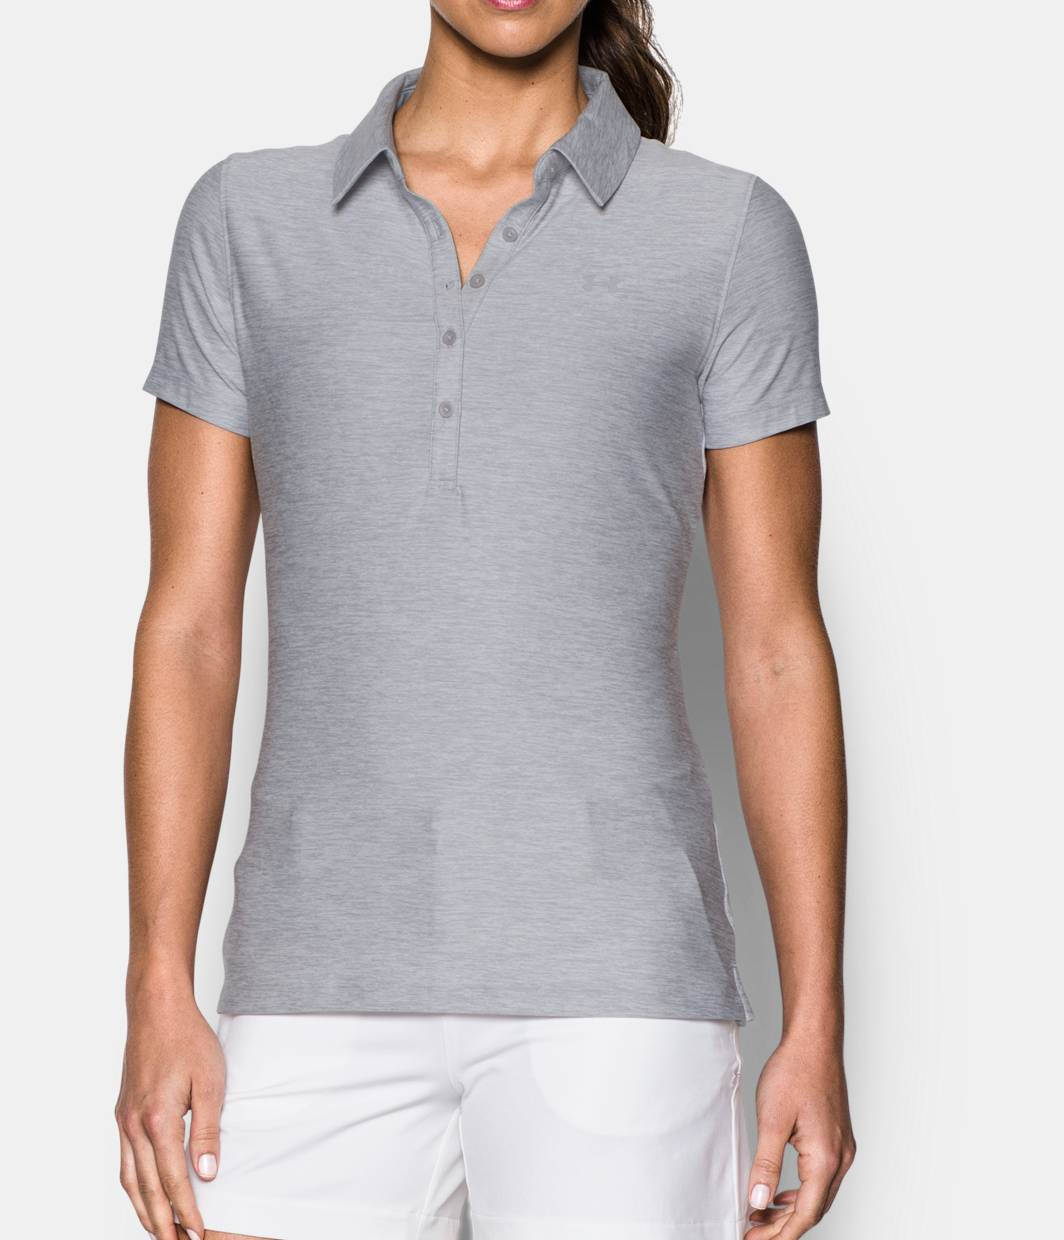 Women's Short Sleeve Shirts | Under Armour US